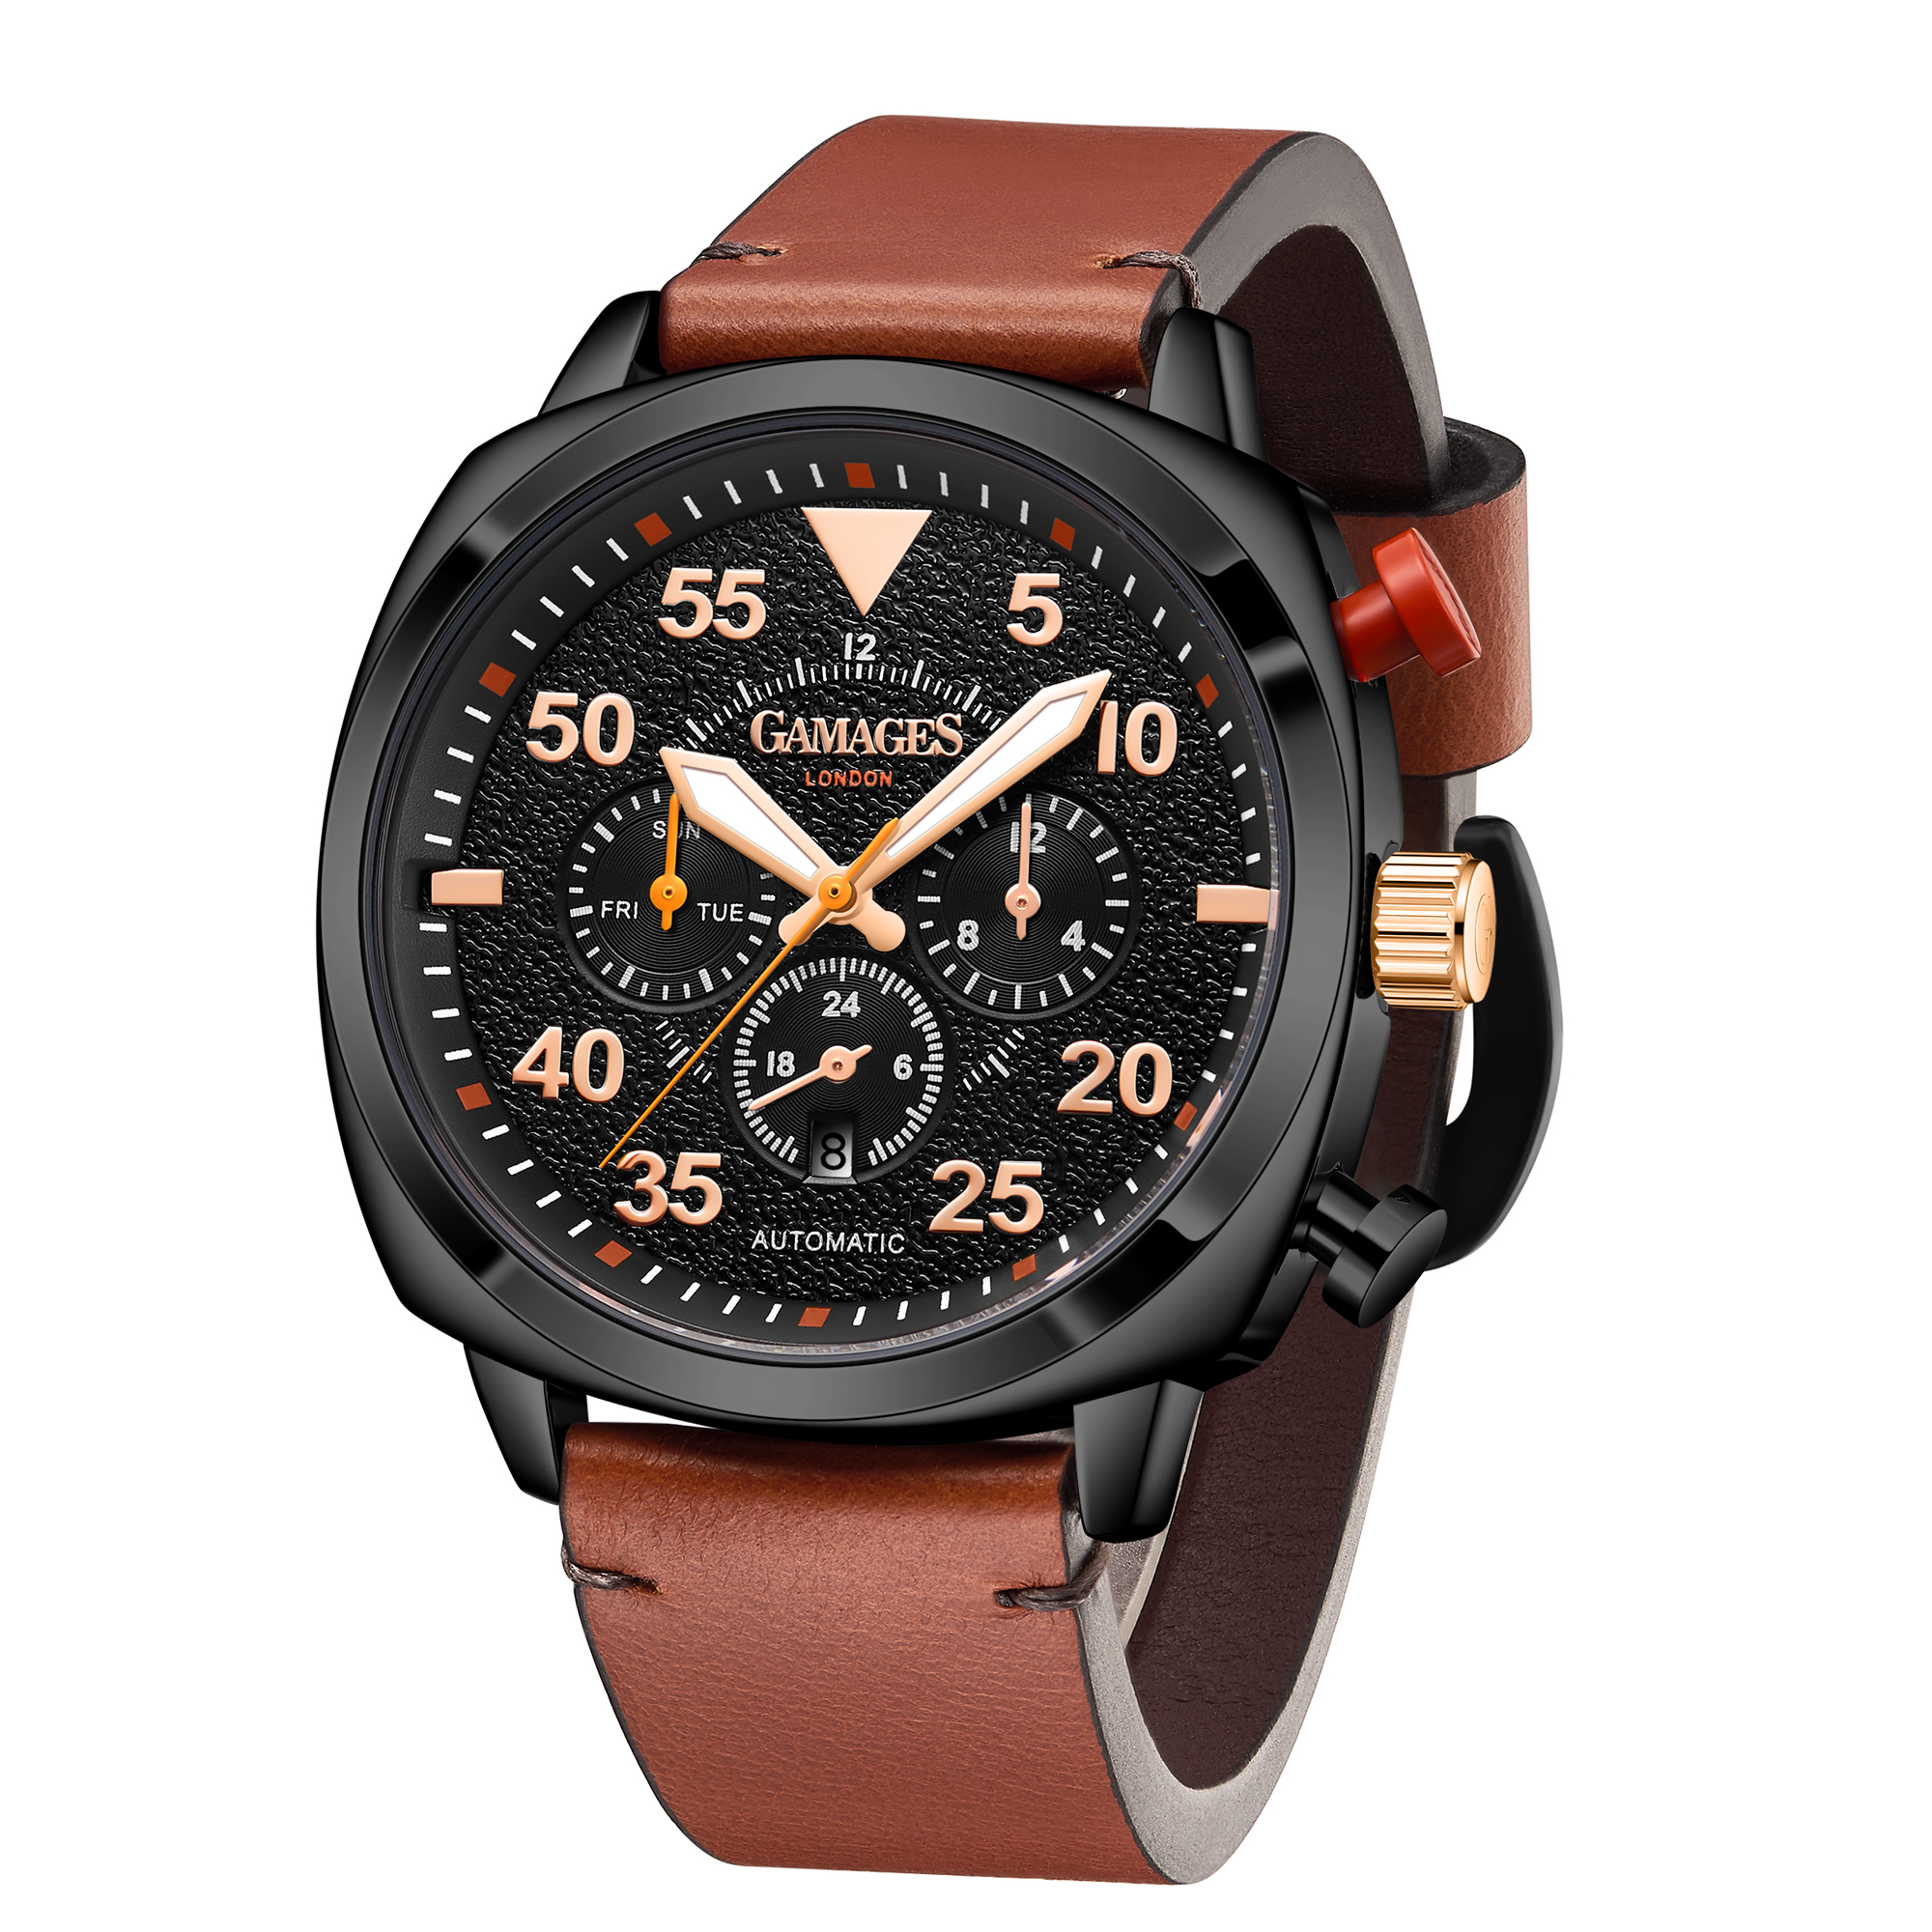 Ltd Edition Hand Assembled Gamages Aviation Automatic Black – 5 Year Warranty & Free Delivery - Image 3 of 4